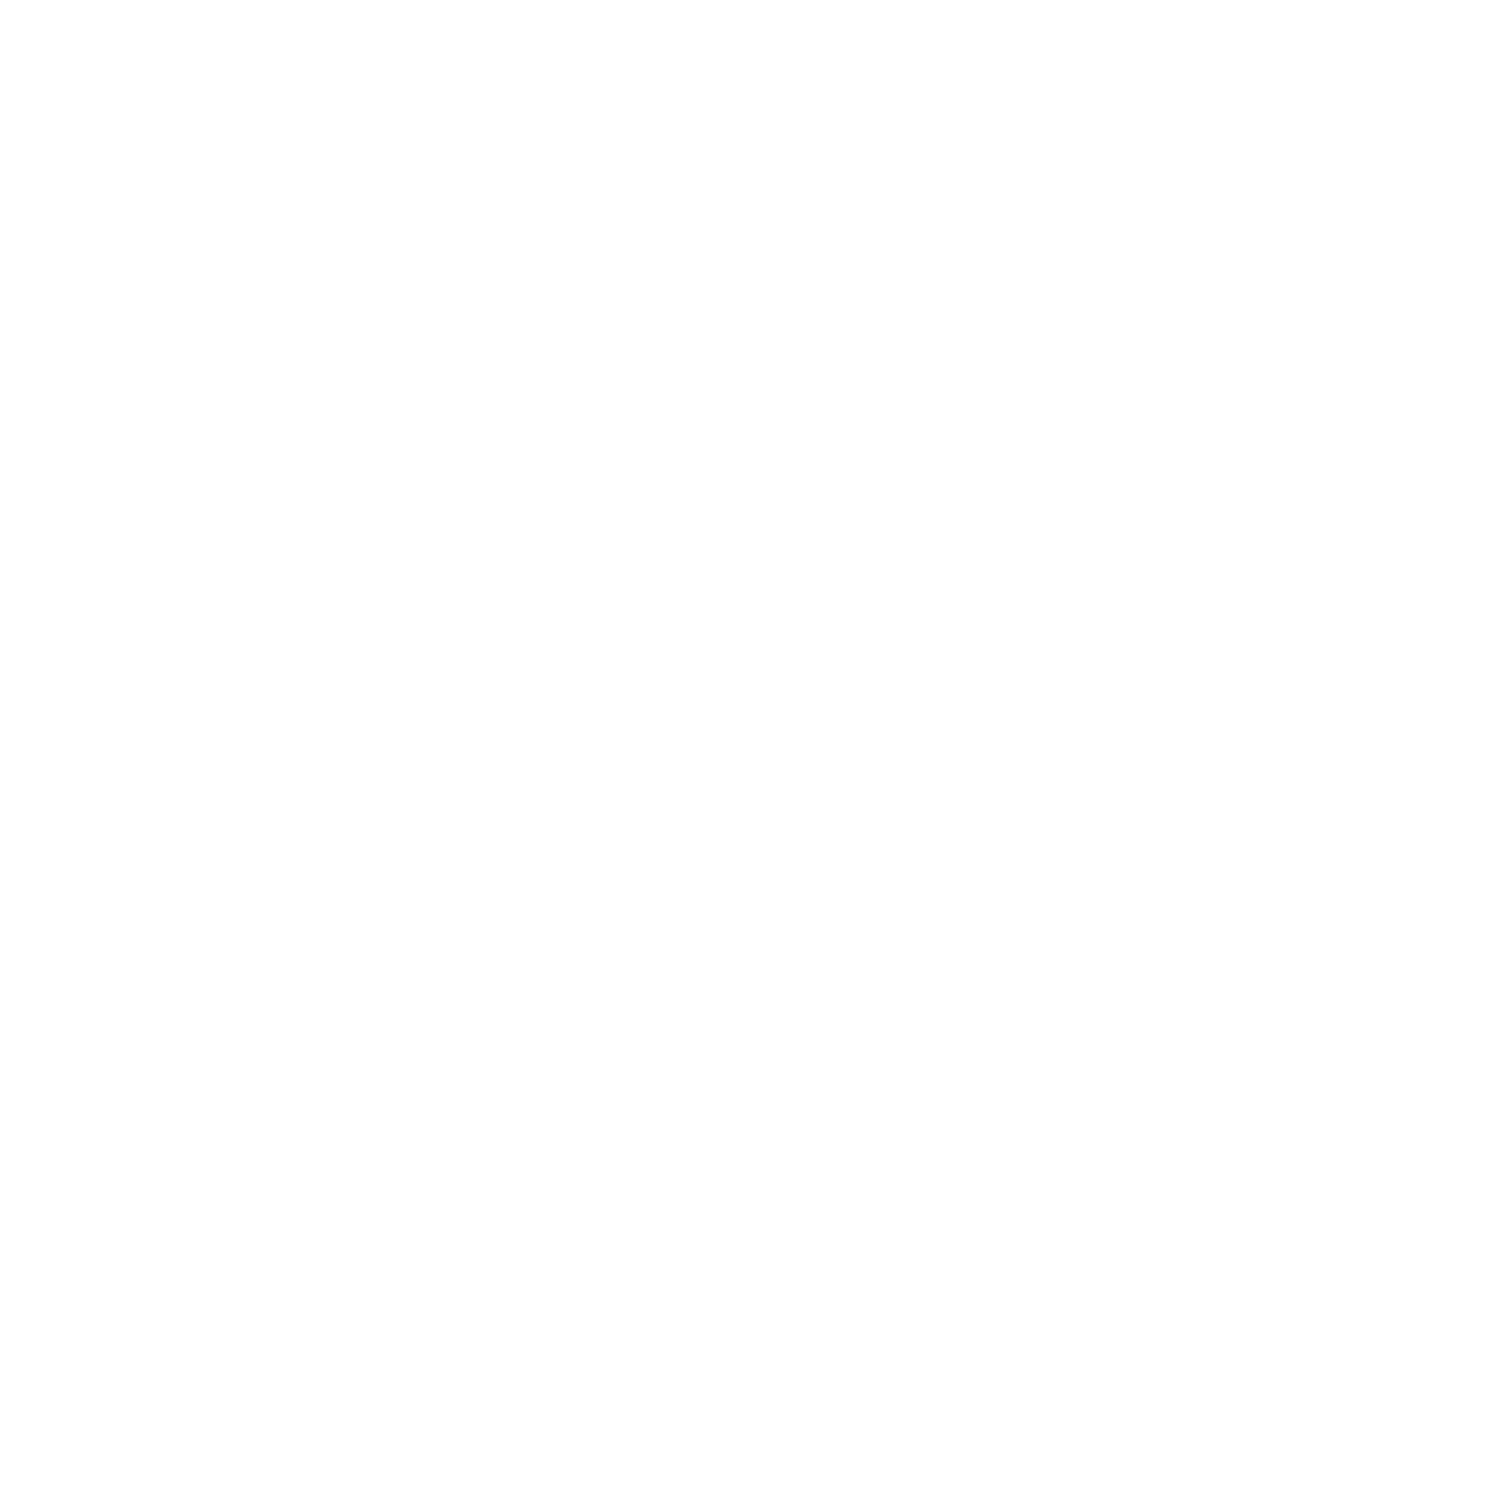 Rooted for Growth